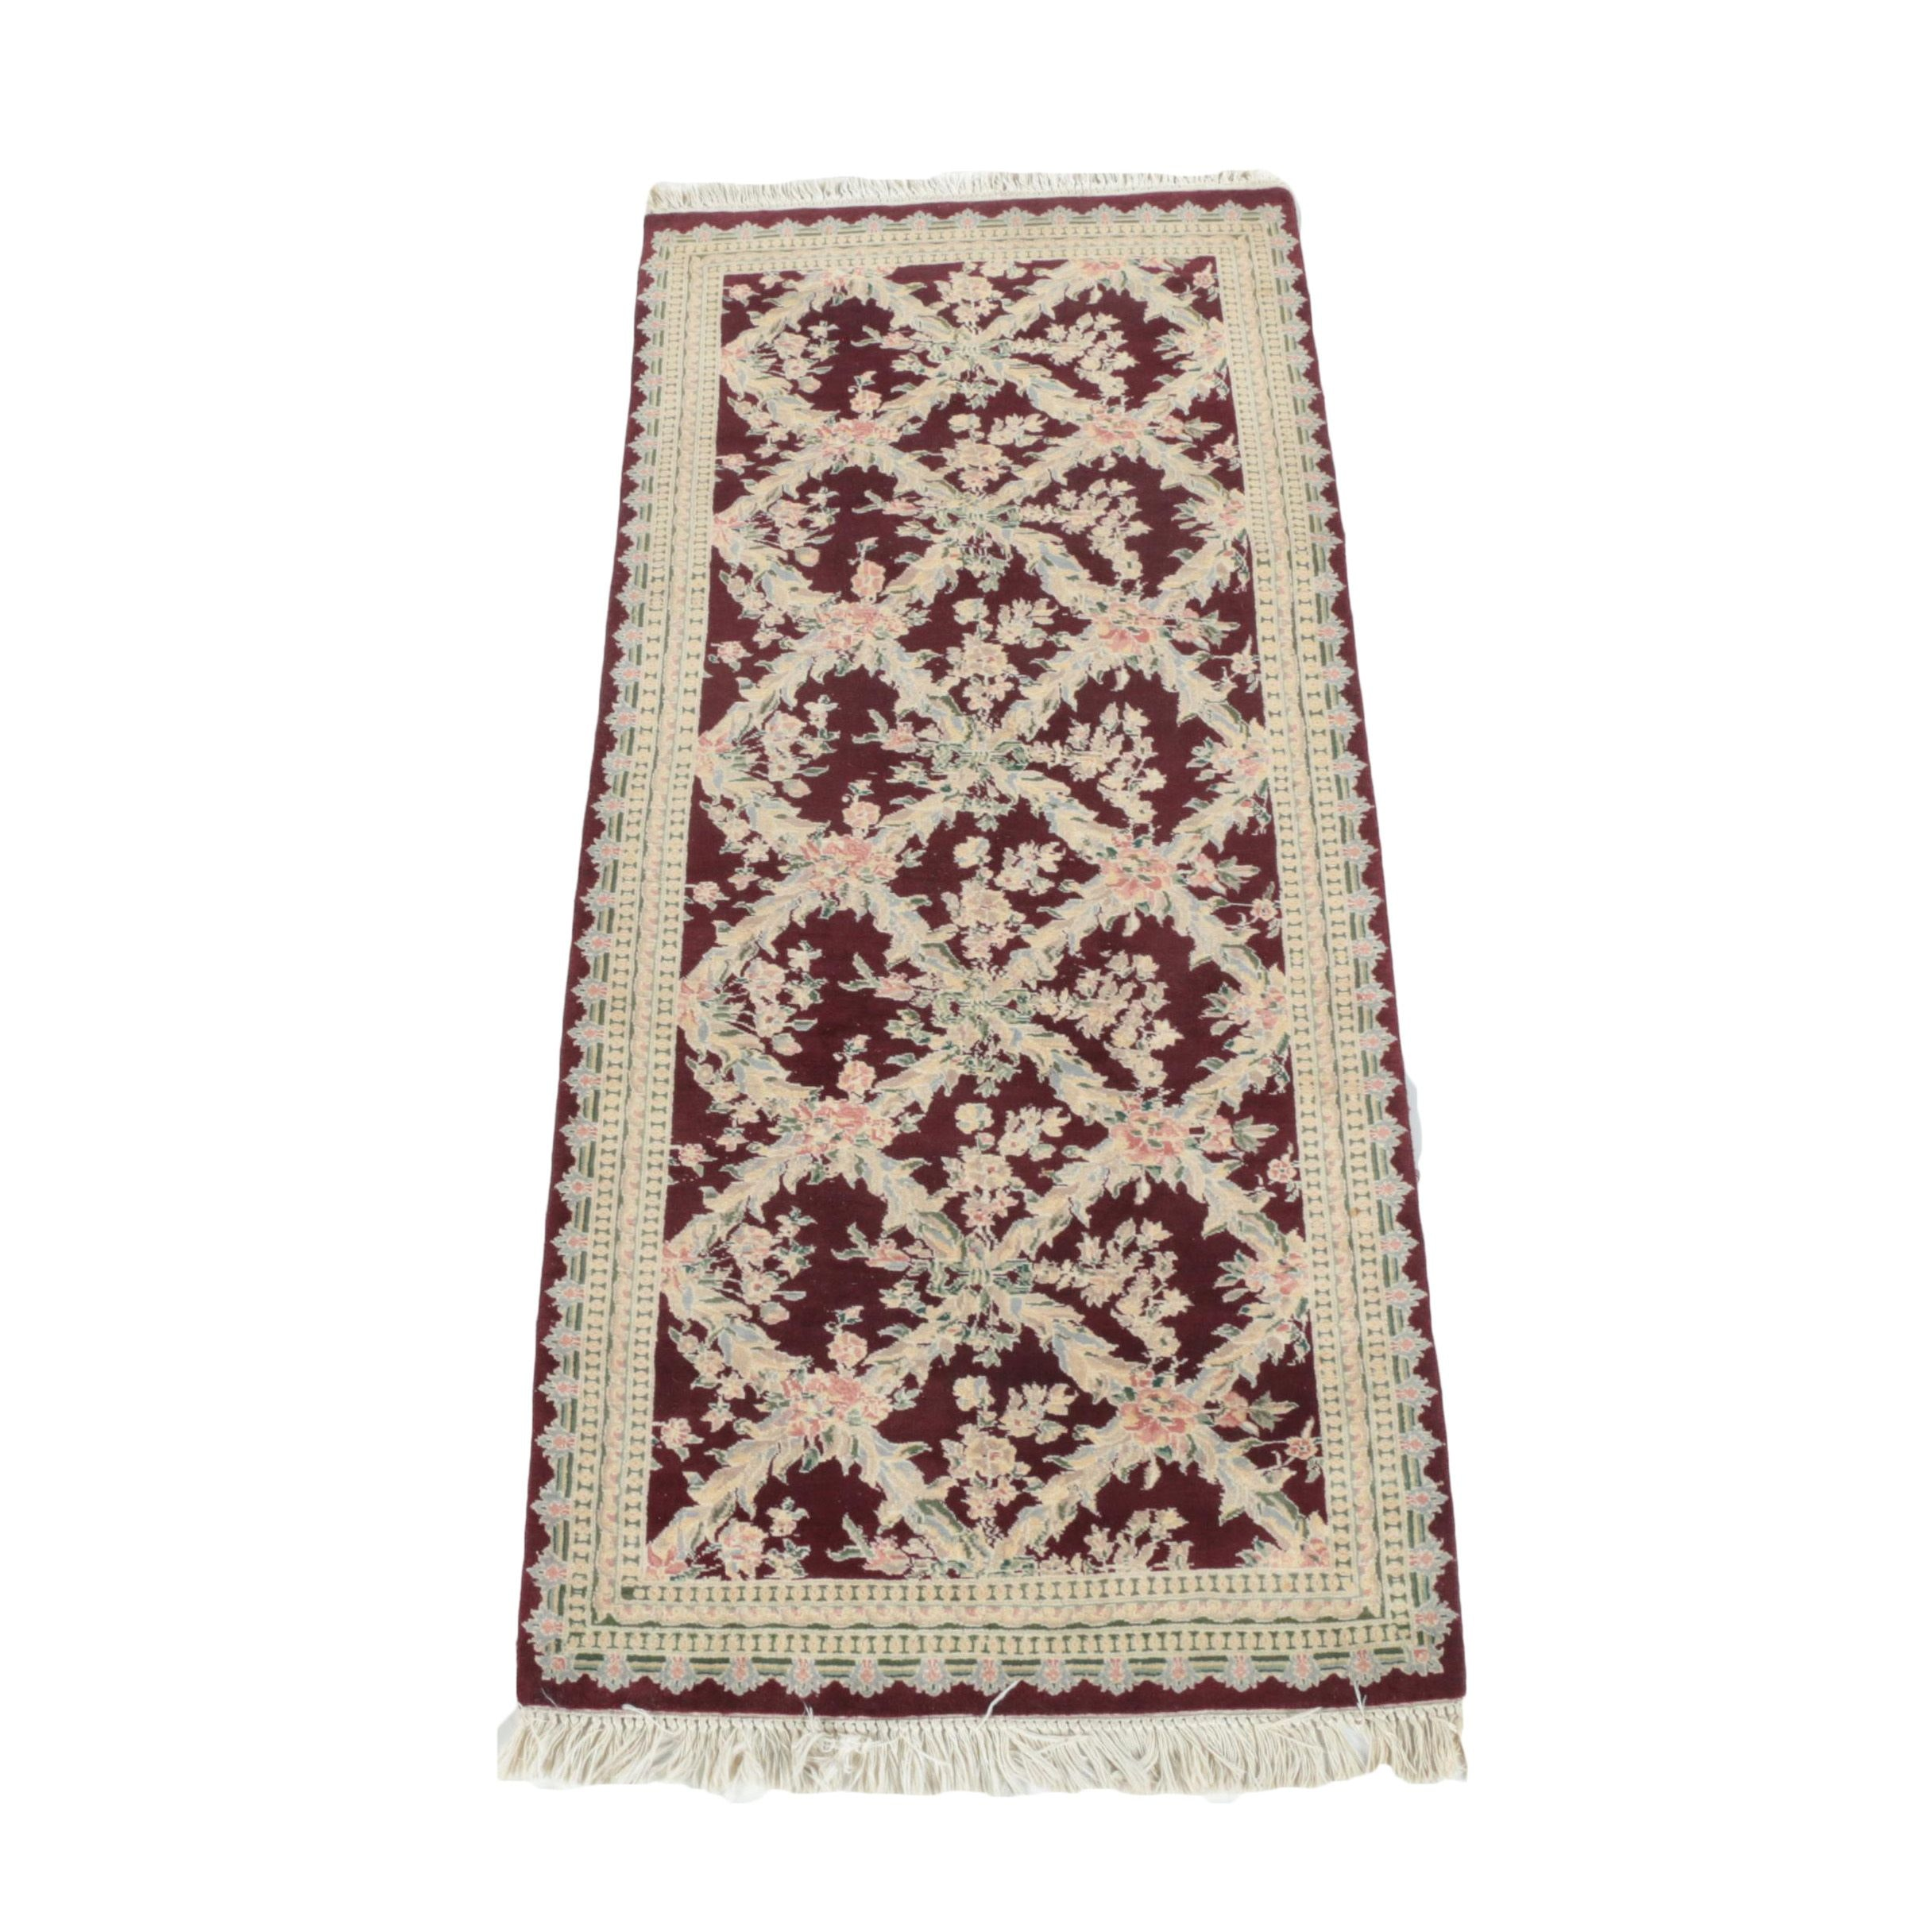 Hand-Knotted Floral Lattice Wool Area Rug